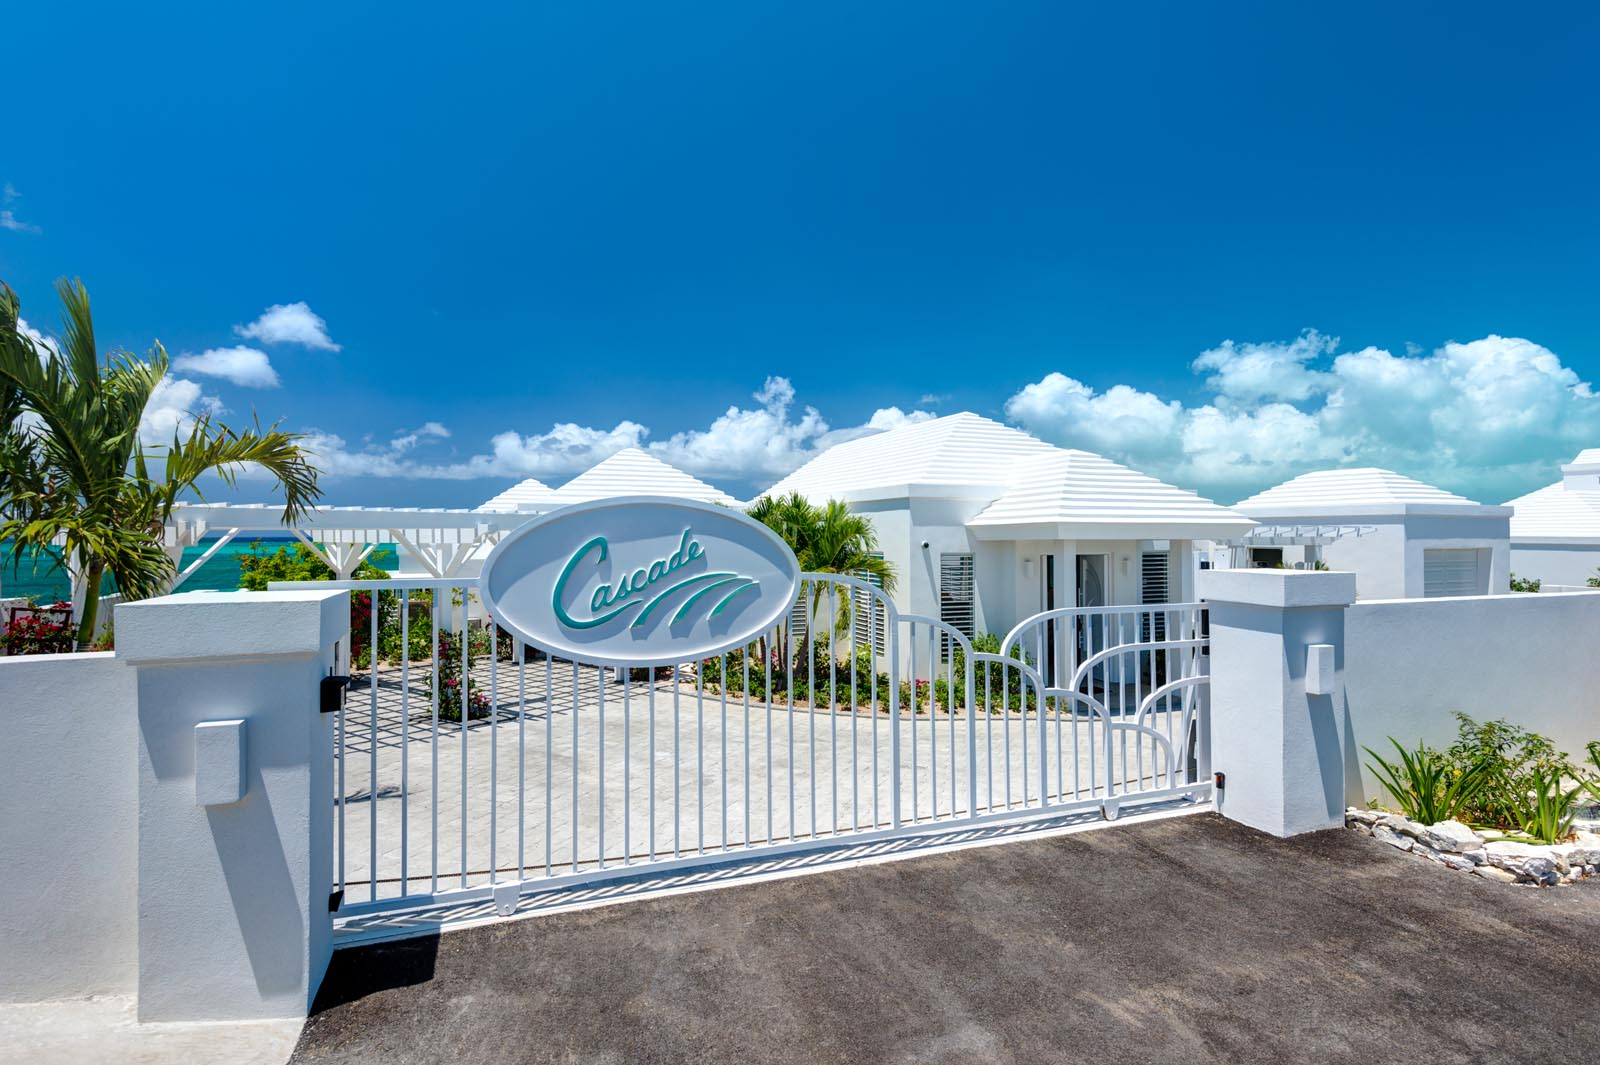 The private security gate of this Turks and Caicos vacation villa rental.